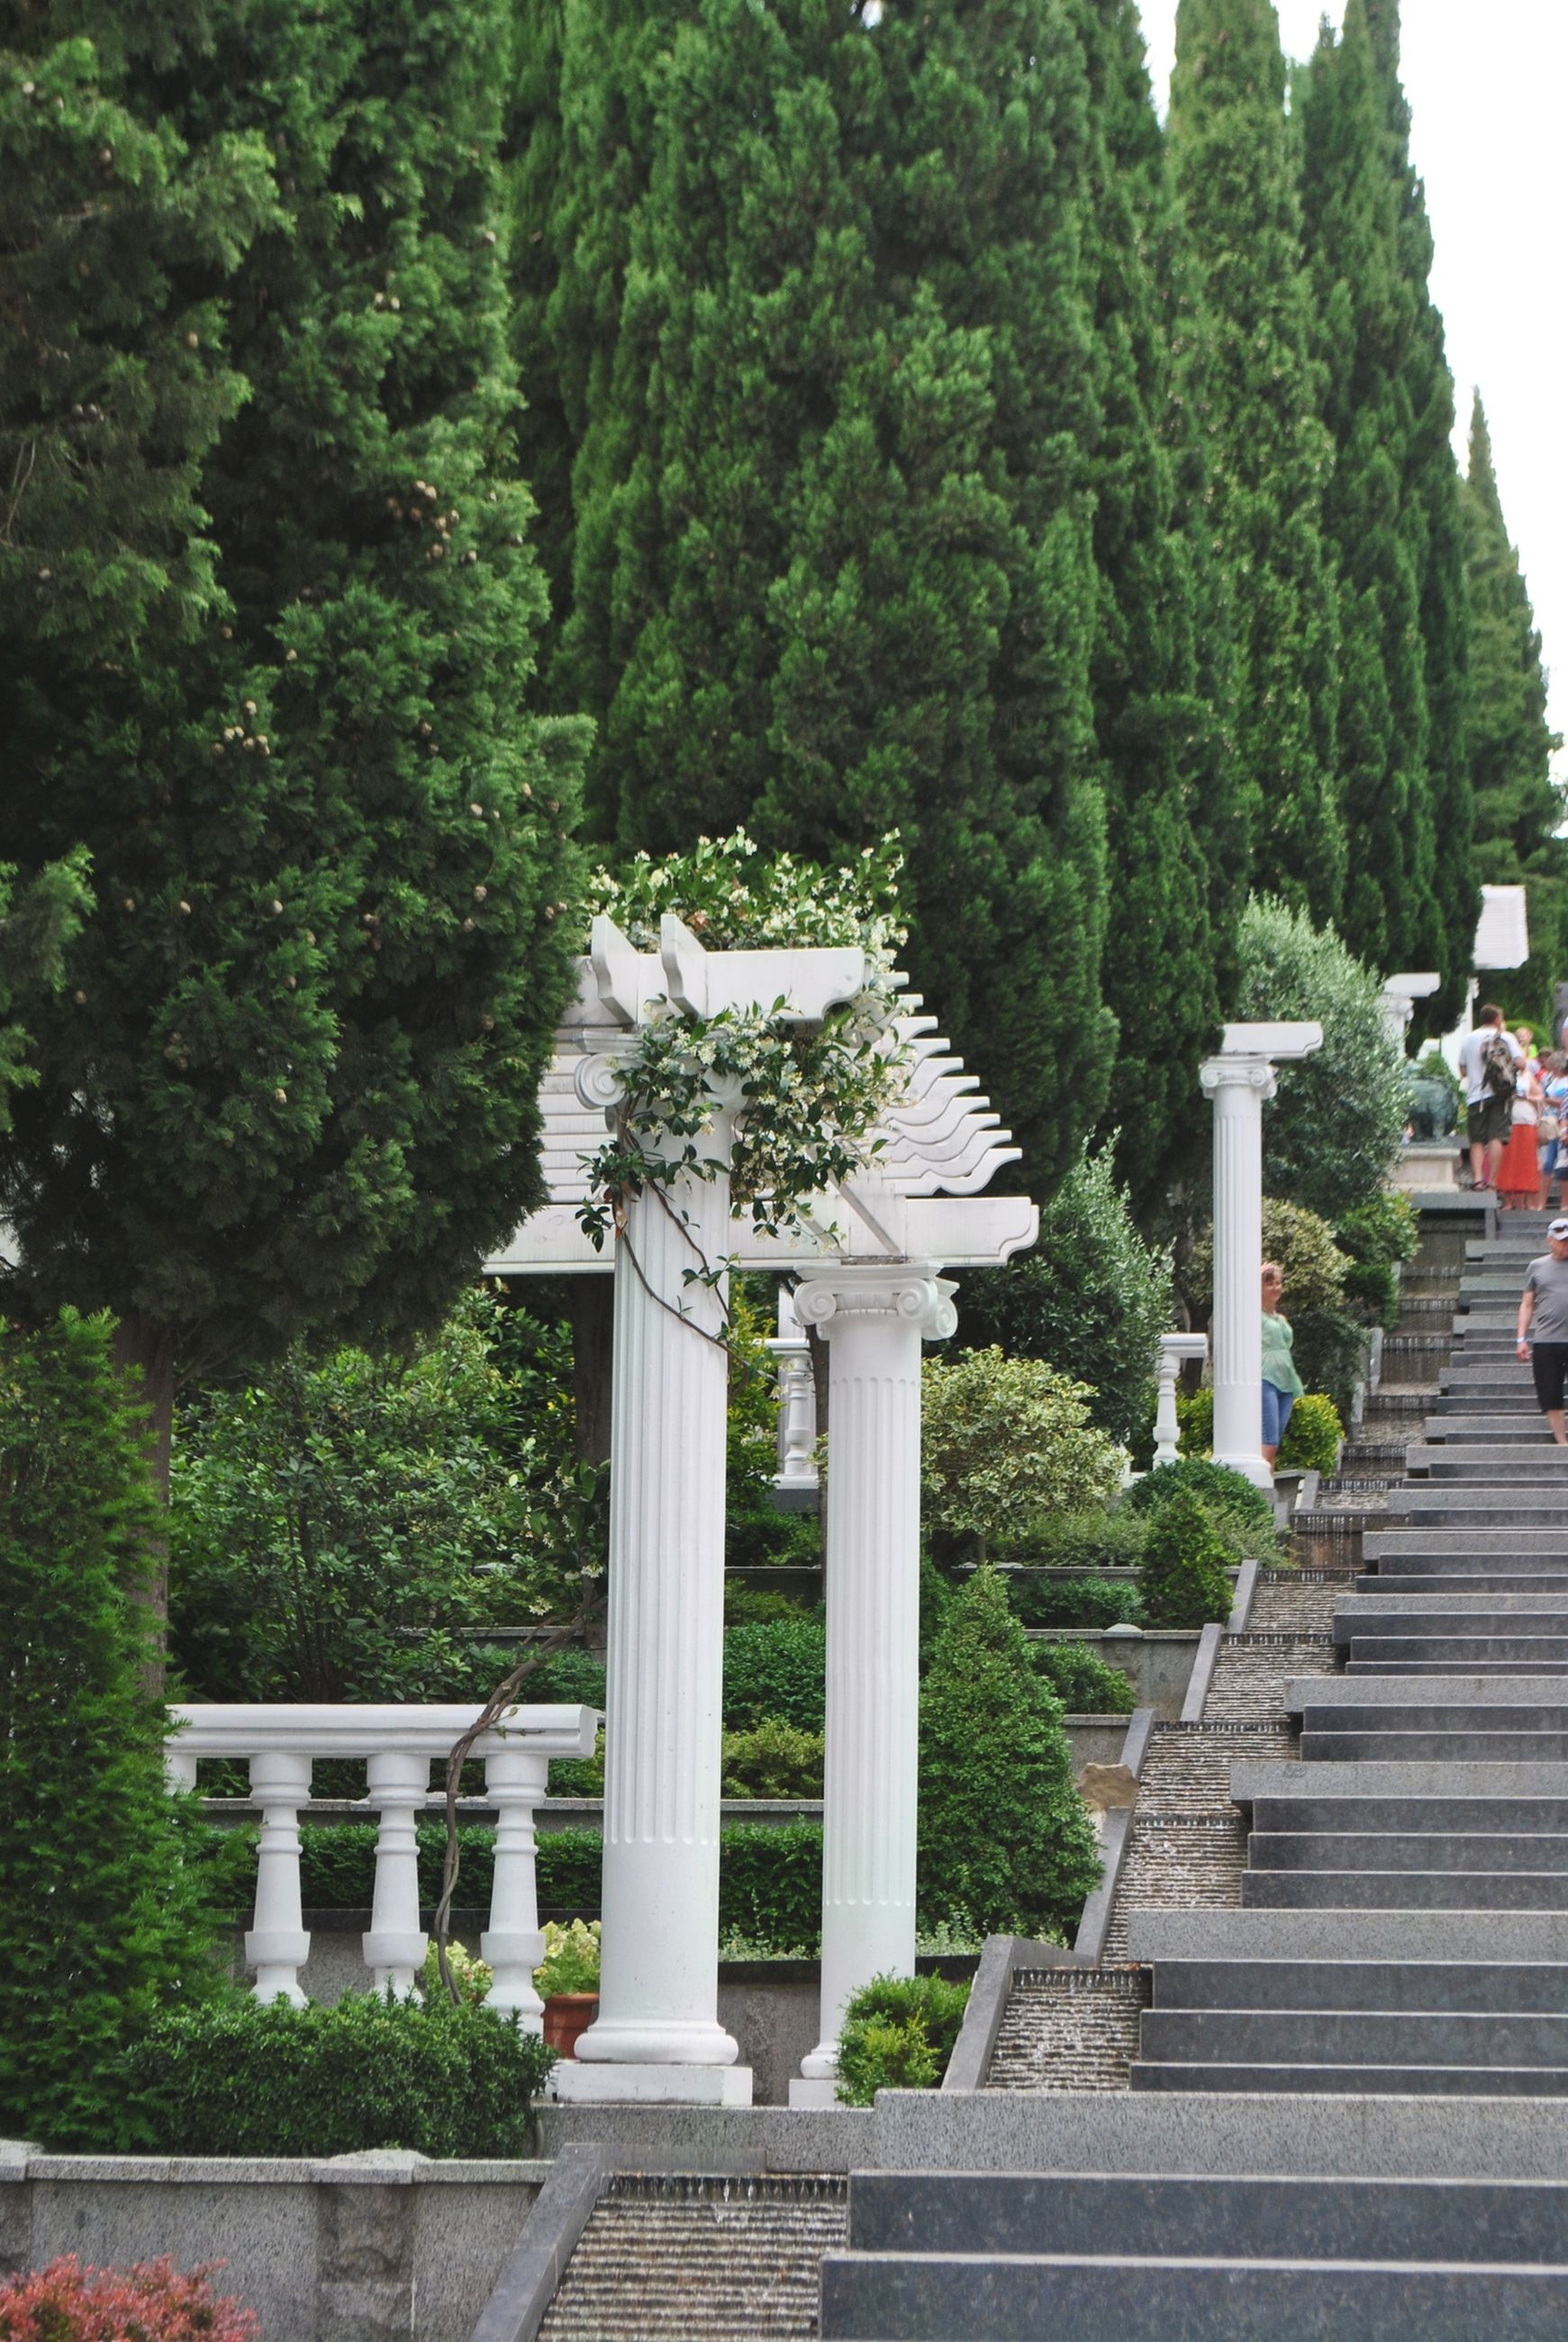 plant, tree, architecture, staircase, built structure, day, nature, growth, no people, green color, steps and staircases, outdoors, religion, belief, spirituality, place of worship, travel destinations, park, memorial, the way forward, architectural column, shrine